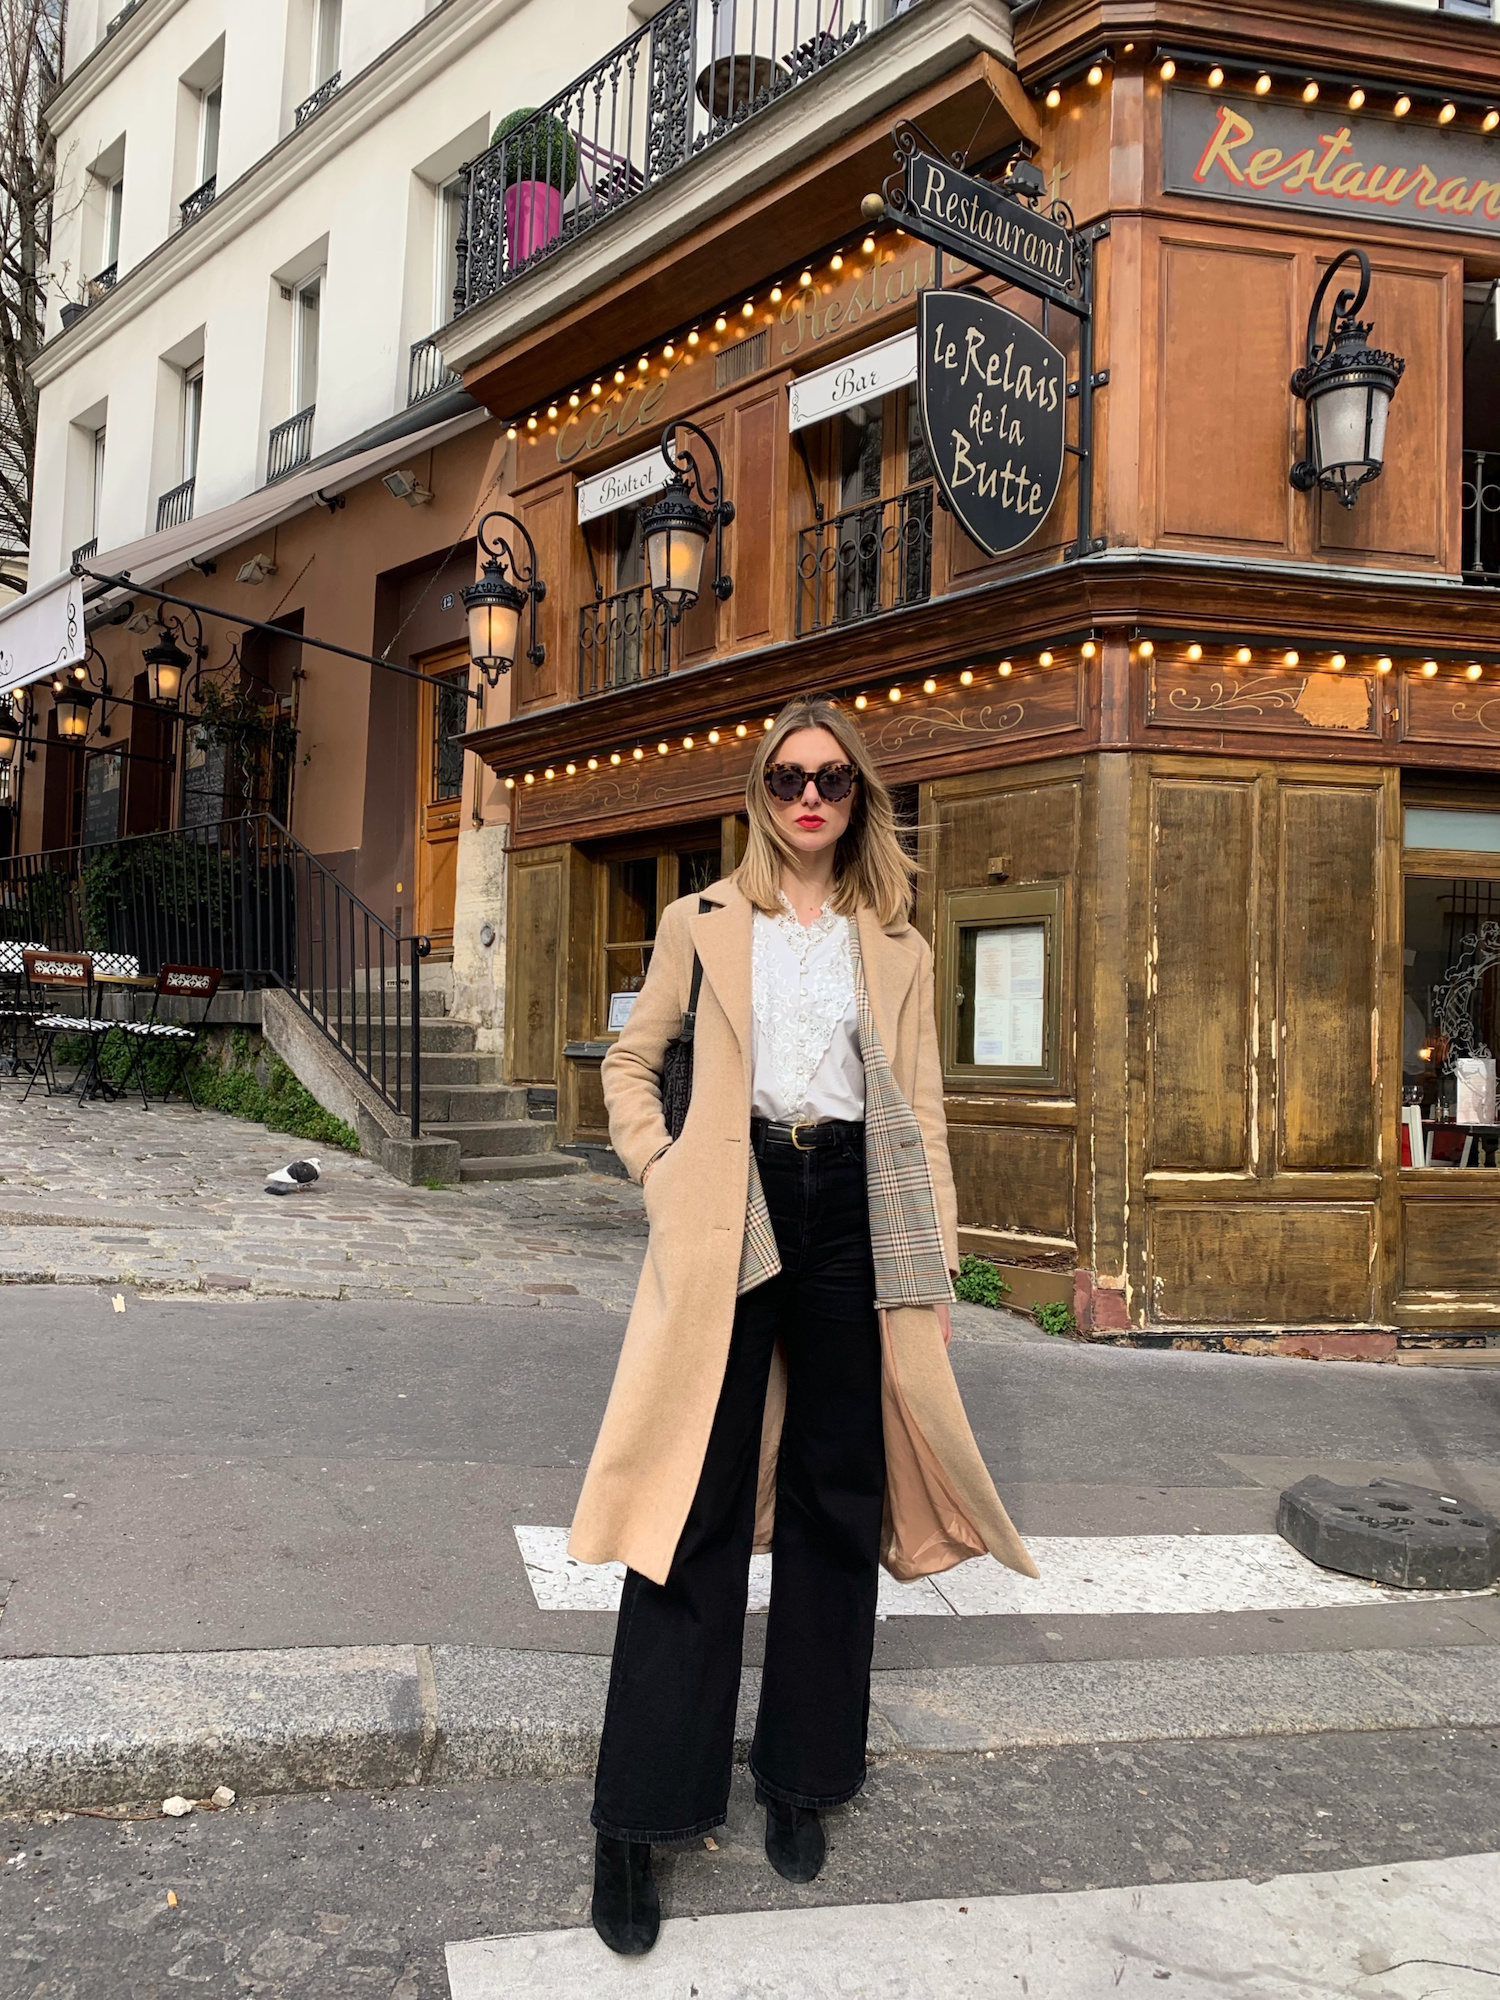 Lucie Rose Mahé, French Girl Style, Founder of Gavroche Vintage in Paris